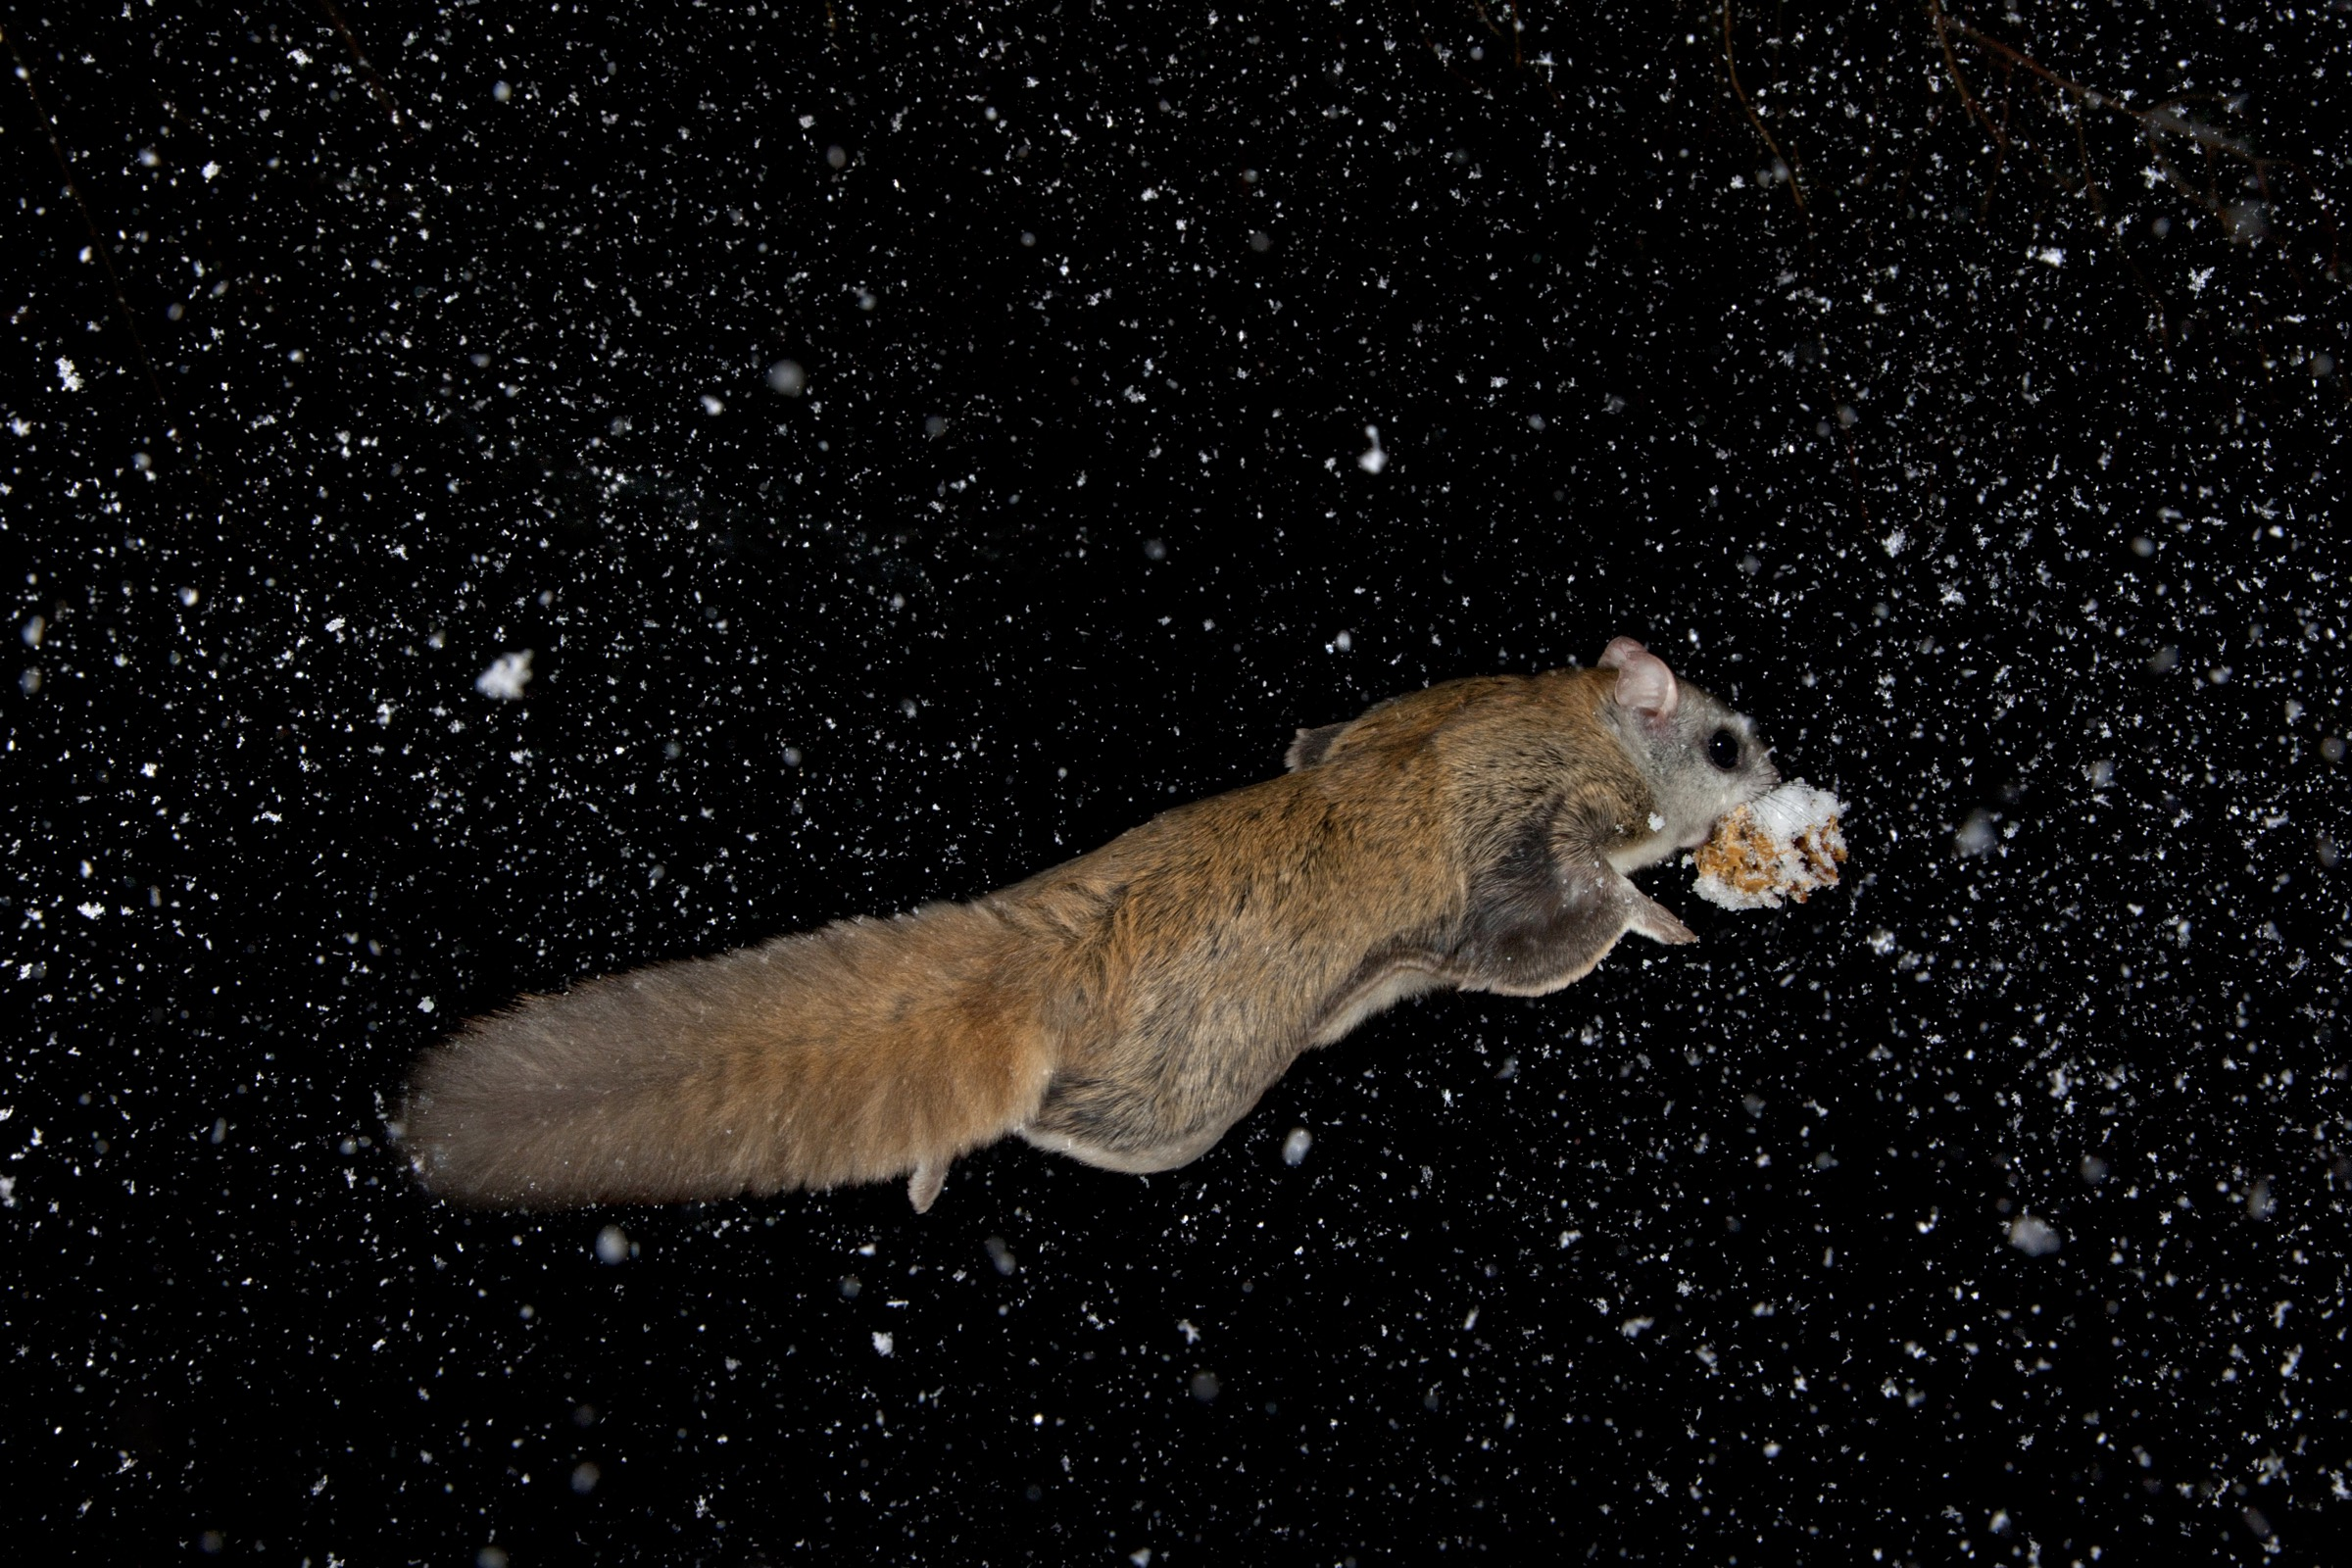 Flying squirrels are the original flexible-wing aircraft. By actively moving their limbs during various stages of a flight, the squirrels are able to morph their shape from that of an agile jet outline during take-offs and aerial pursuits to that of a long-range cruiser during the middle portion of glides.